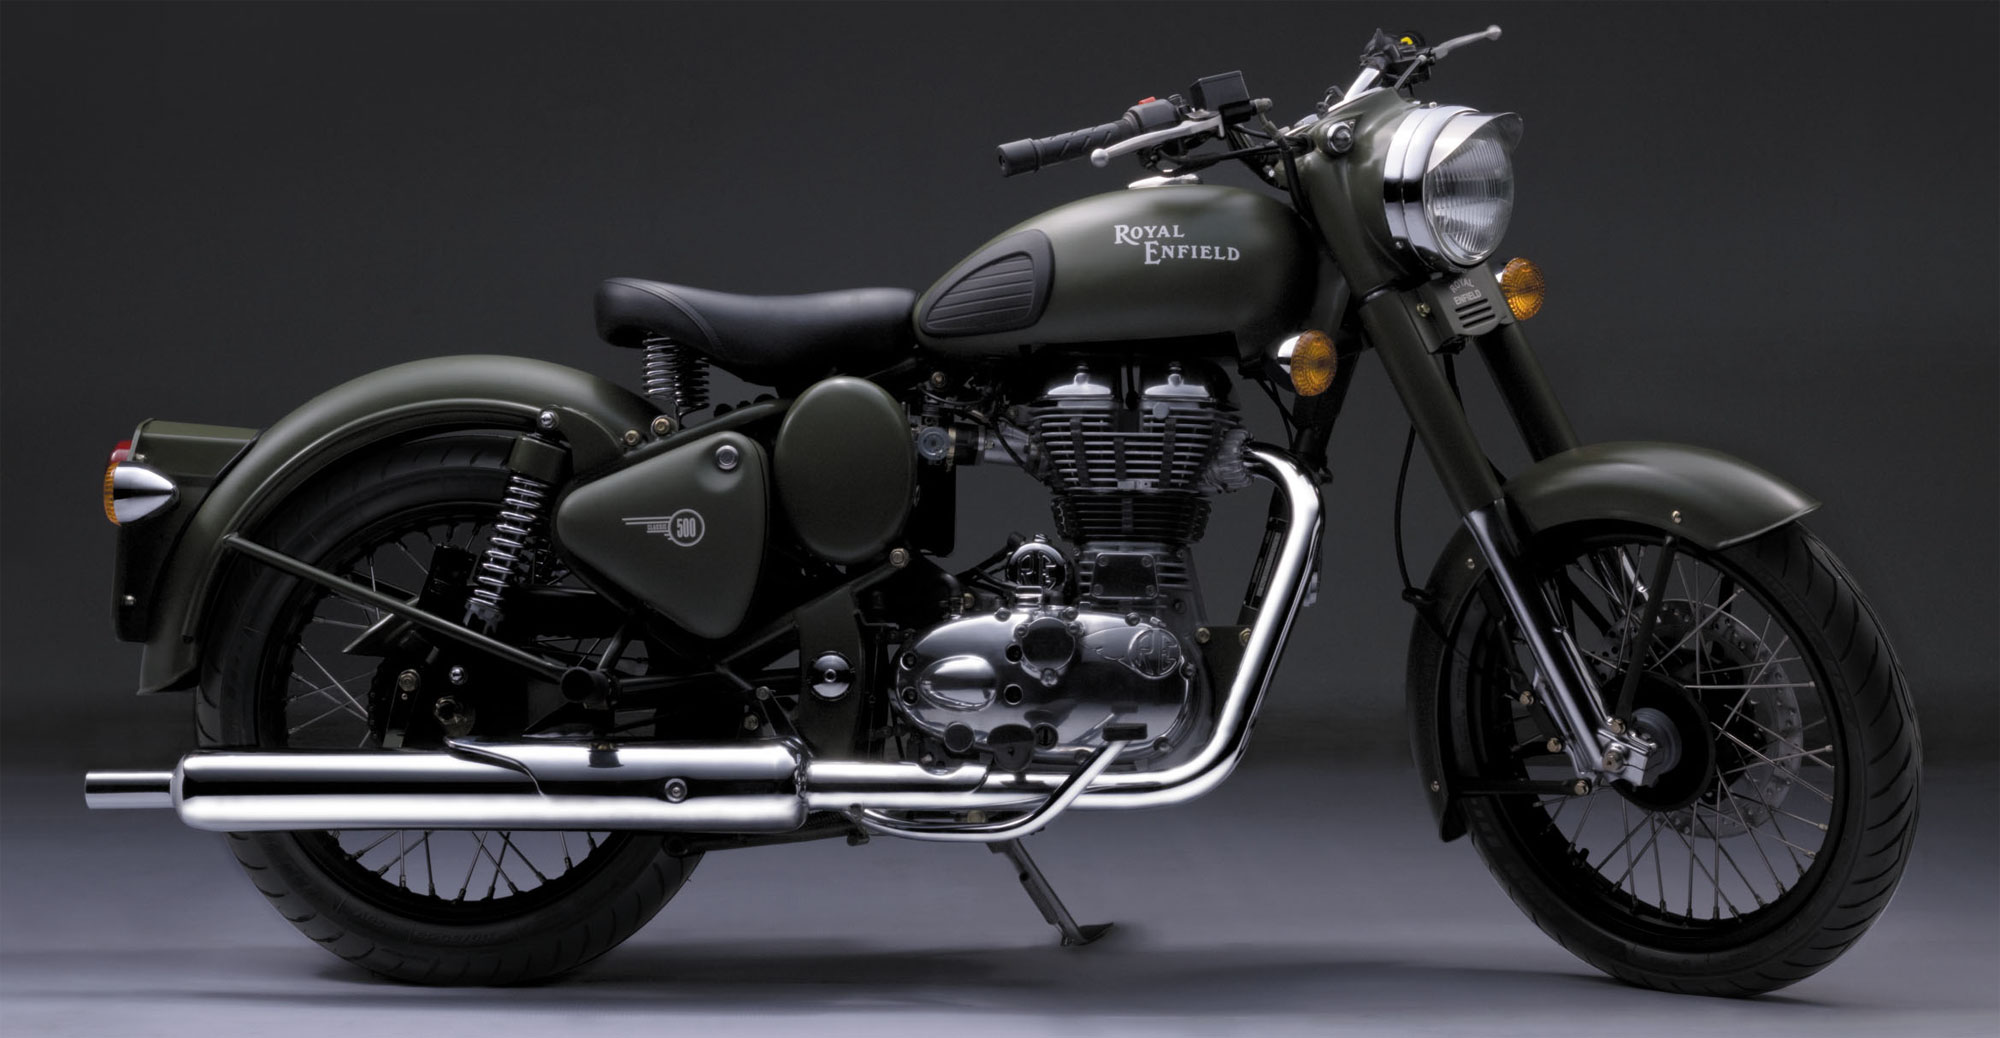 Royal Enfield Bullet 500 Army 2002 images #123427